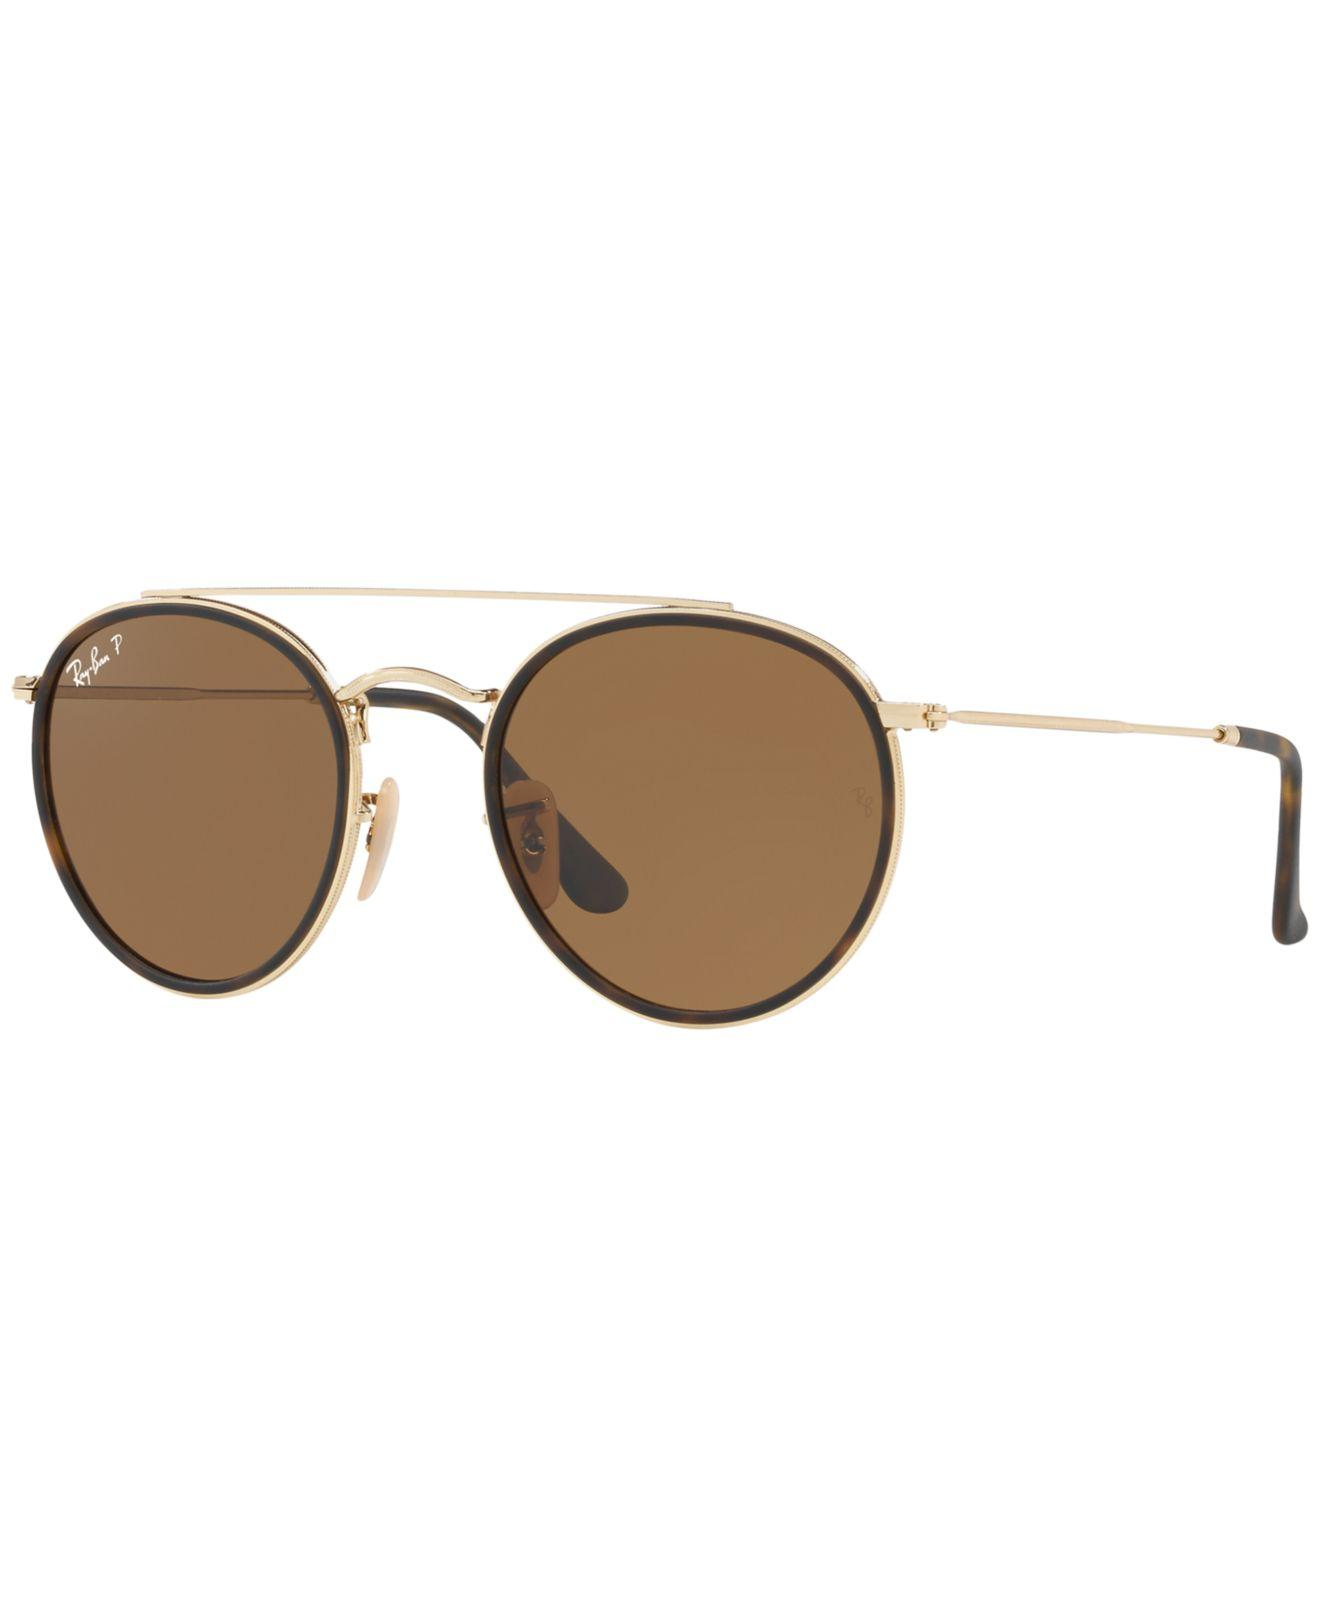 254fd01d43 Lyst - Ray-Ban Rb3647n Polarised Double Bridge Round Sunglasses in ...